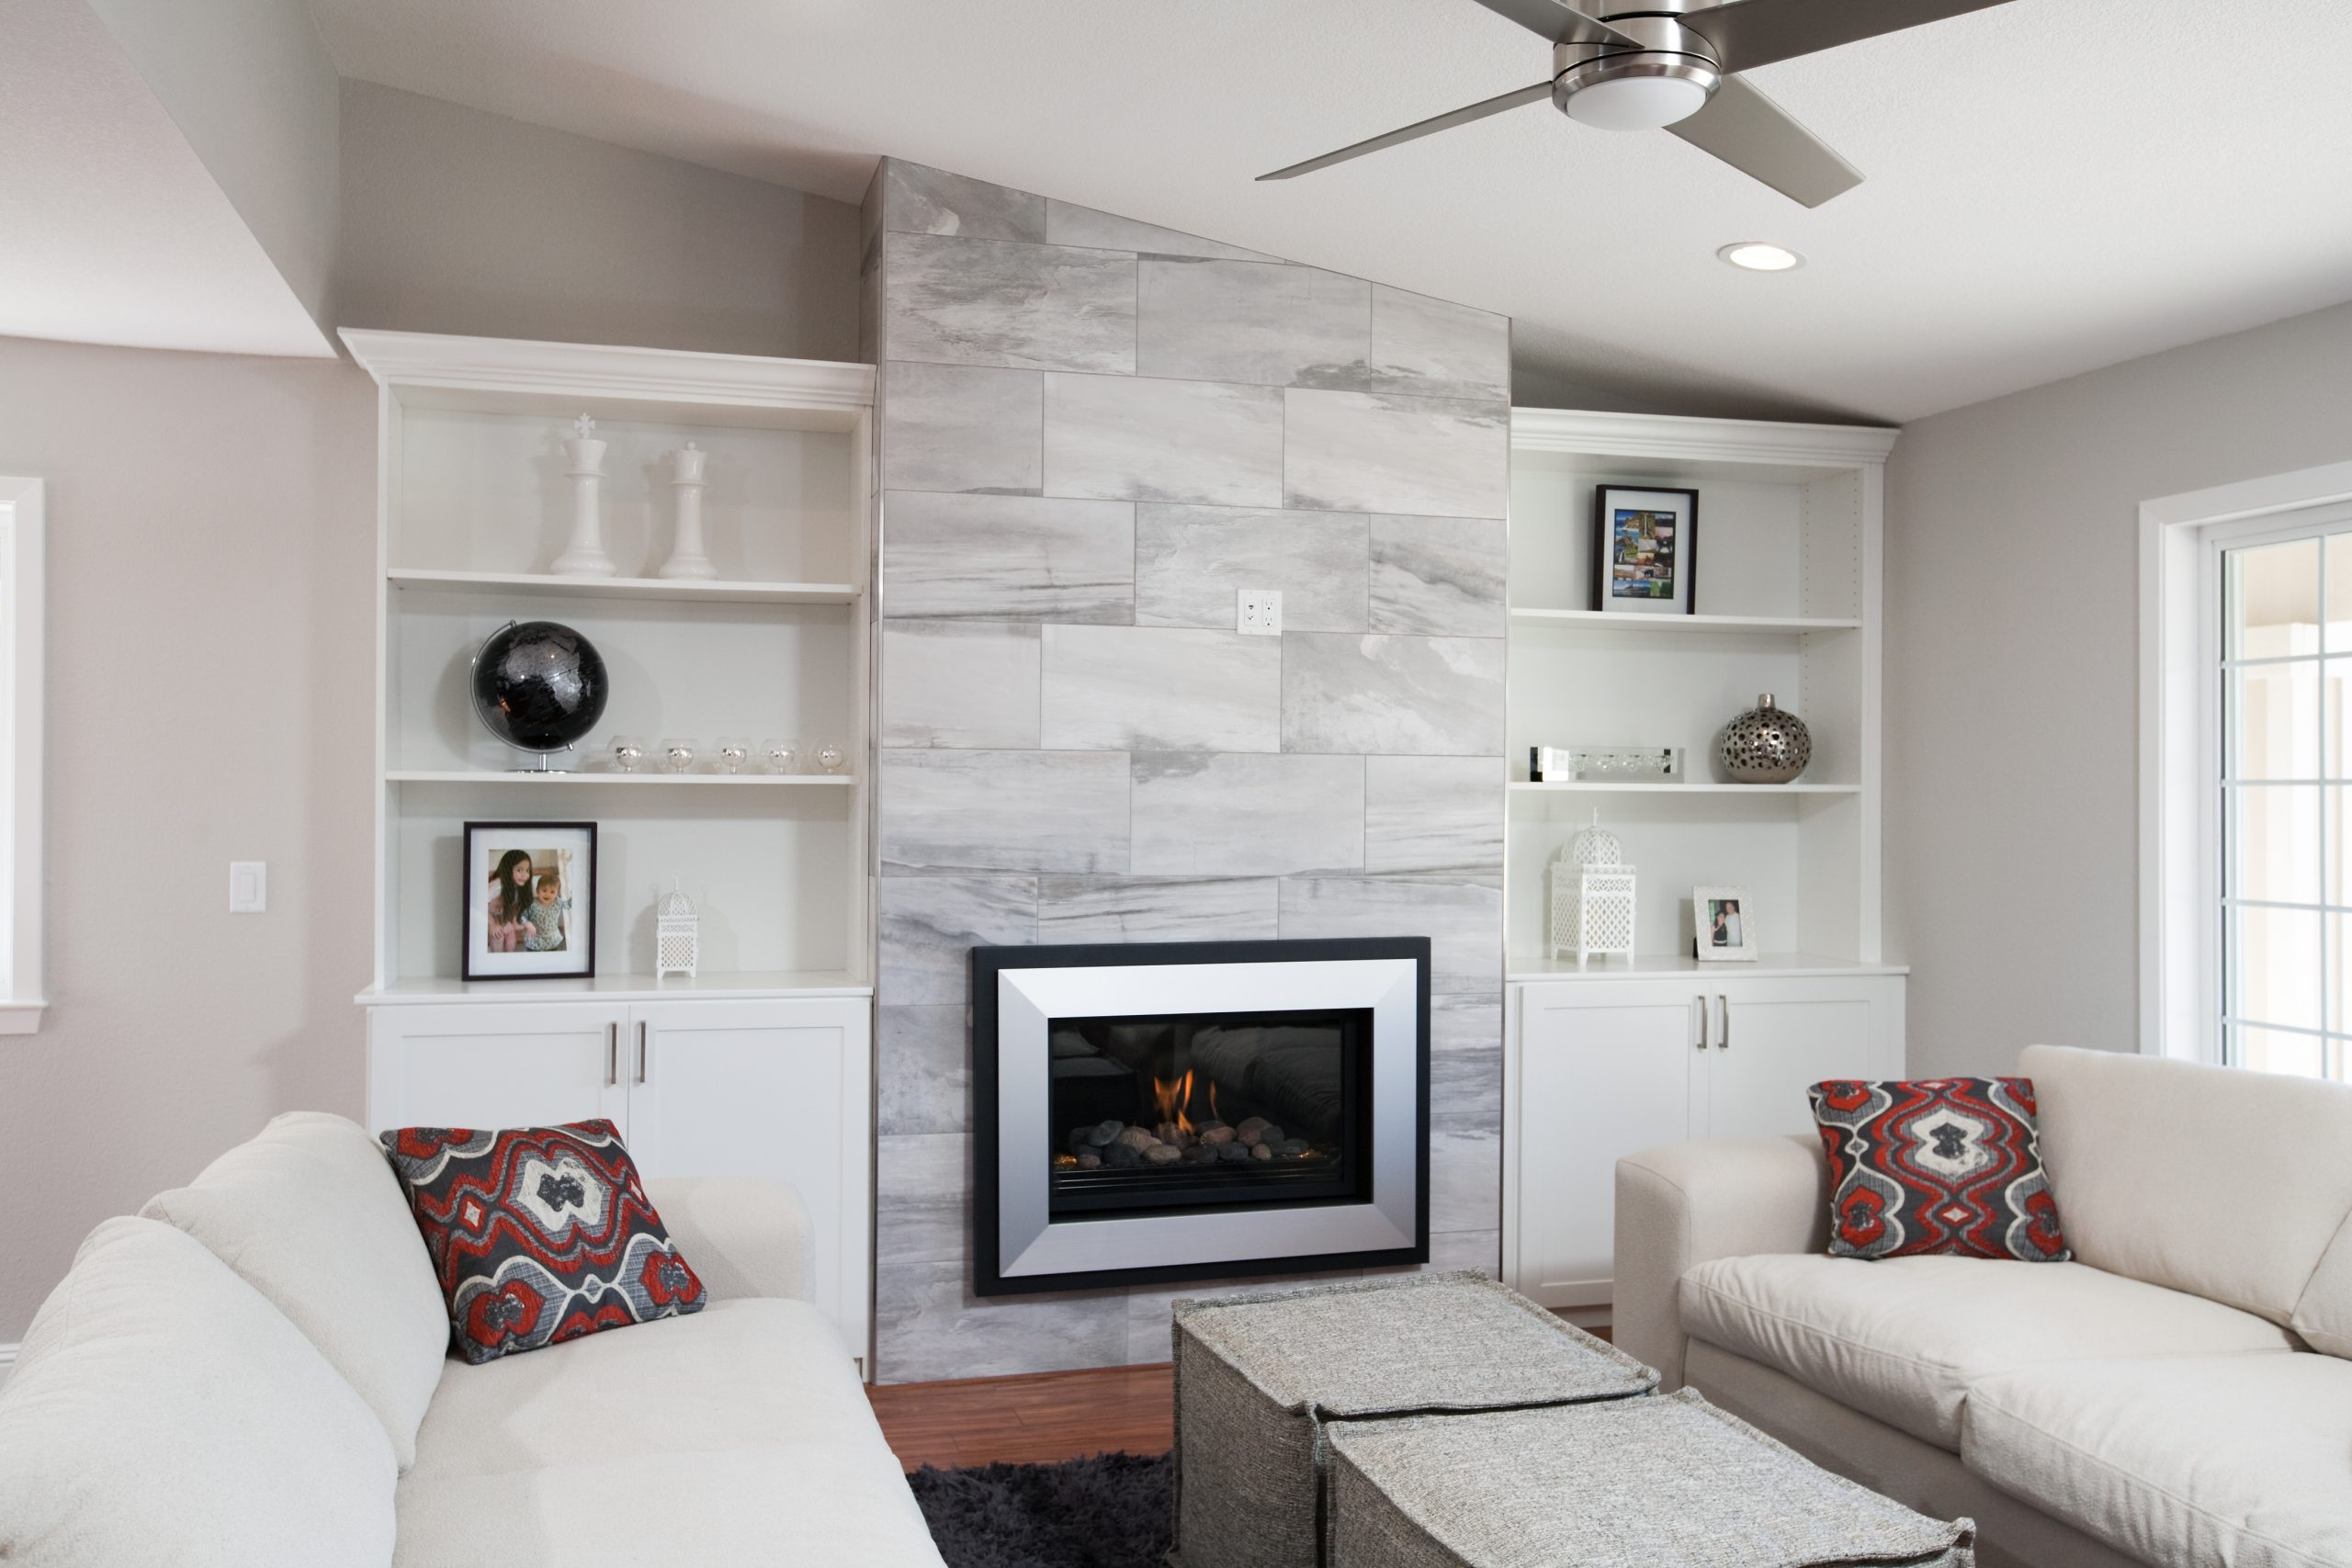 A fireplace recessed into a living room wall.